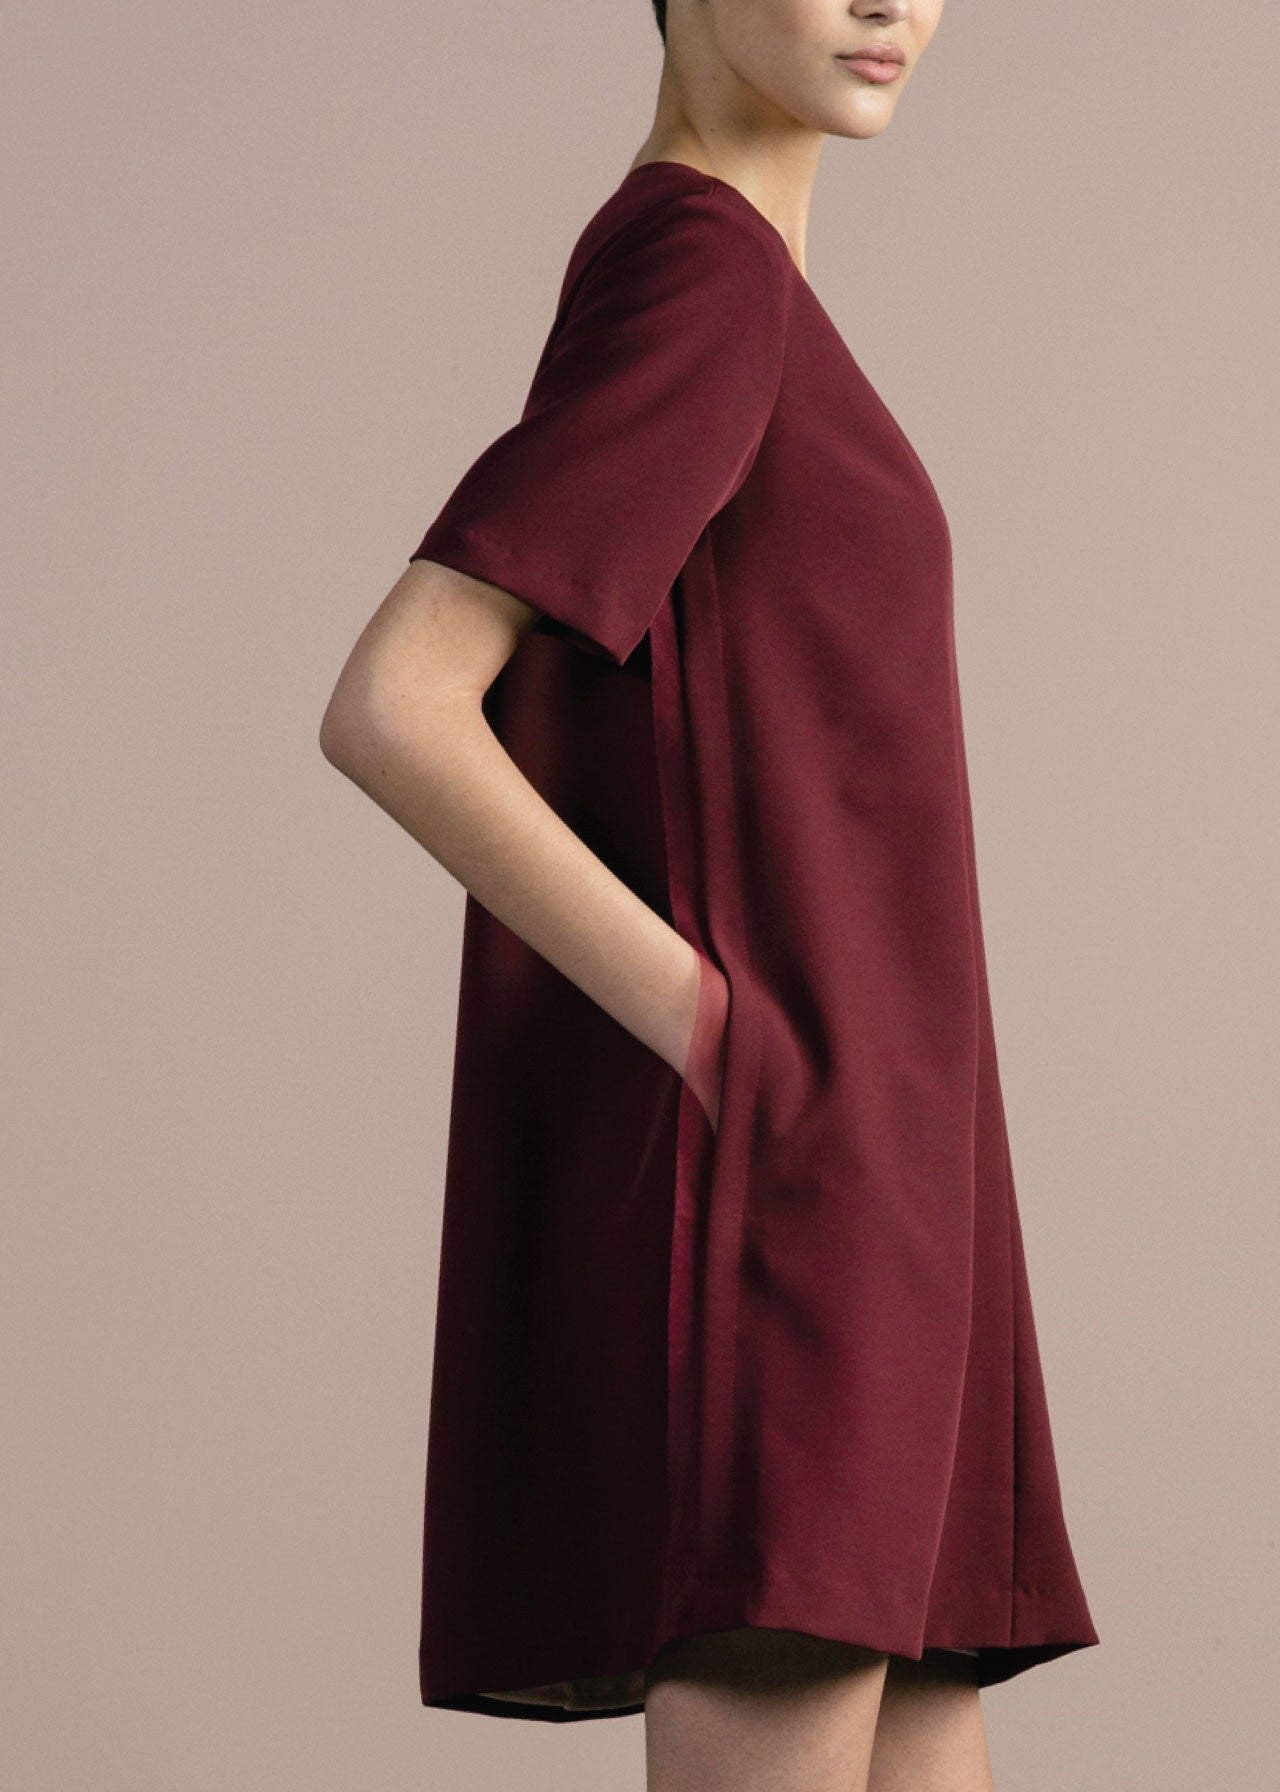 Bardo Dress in Merlot